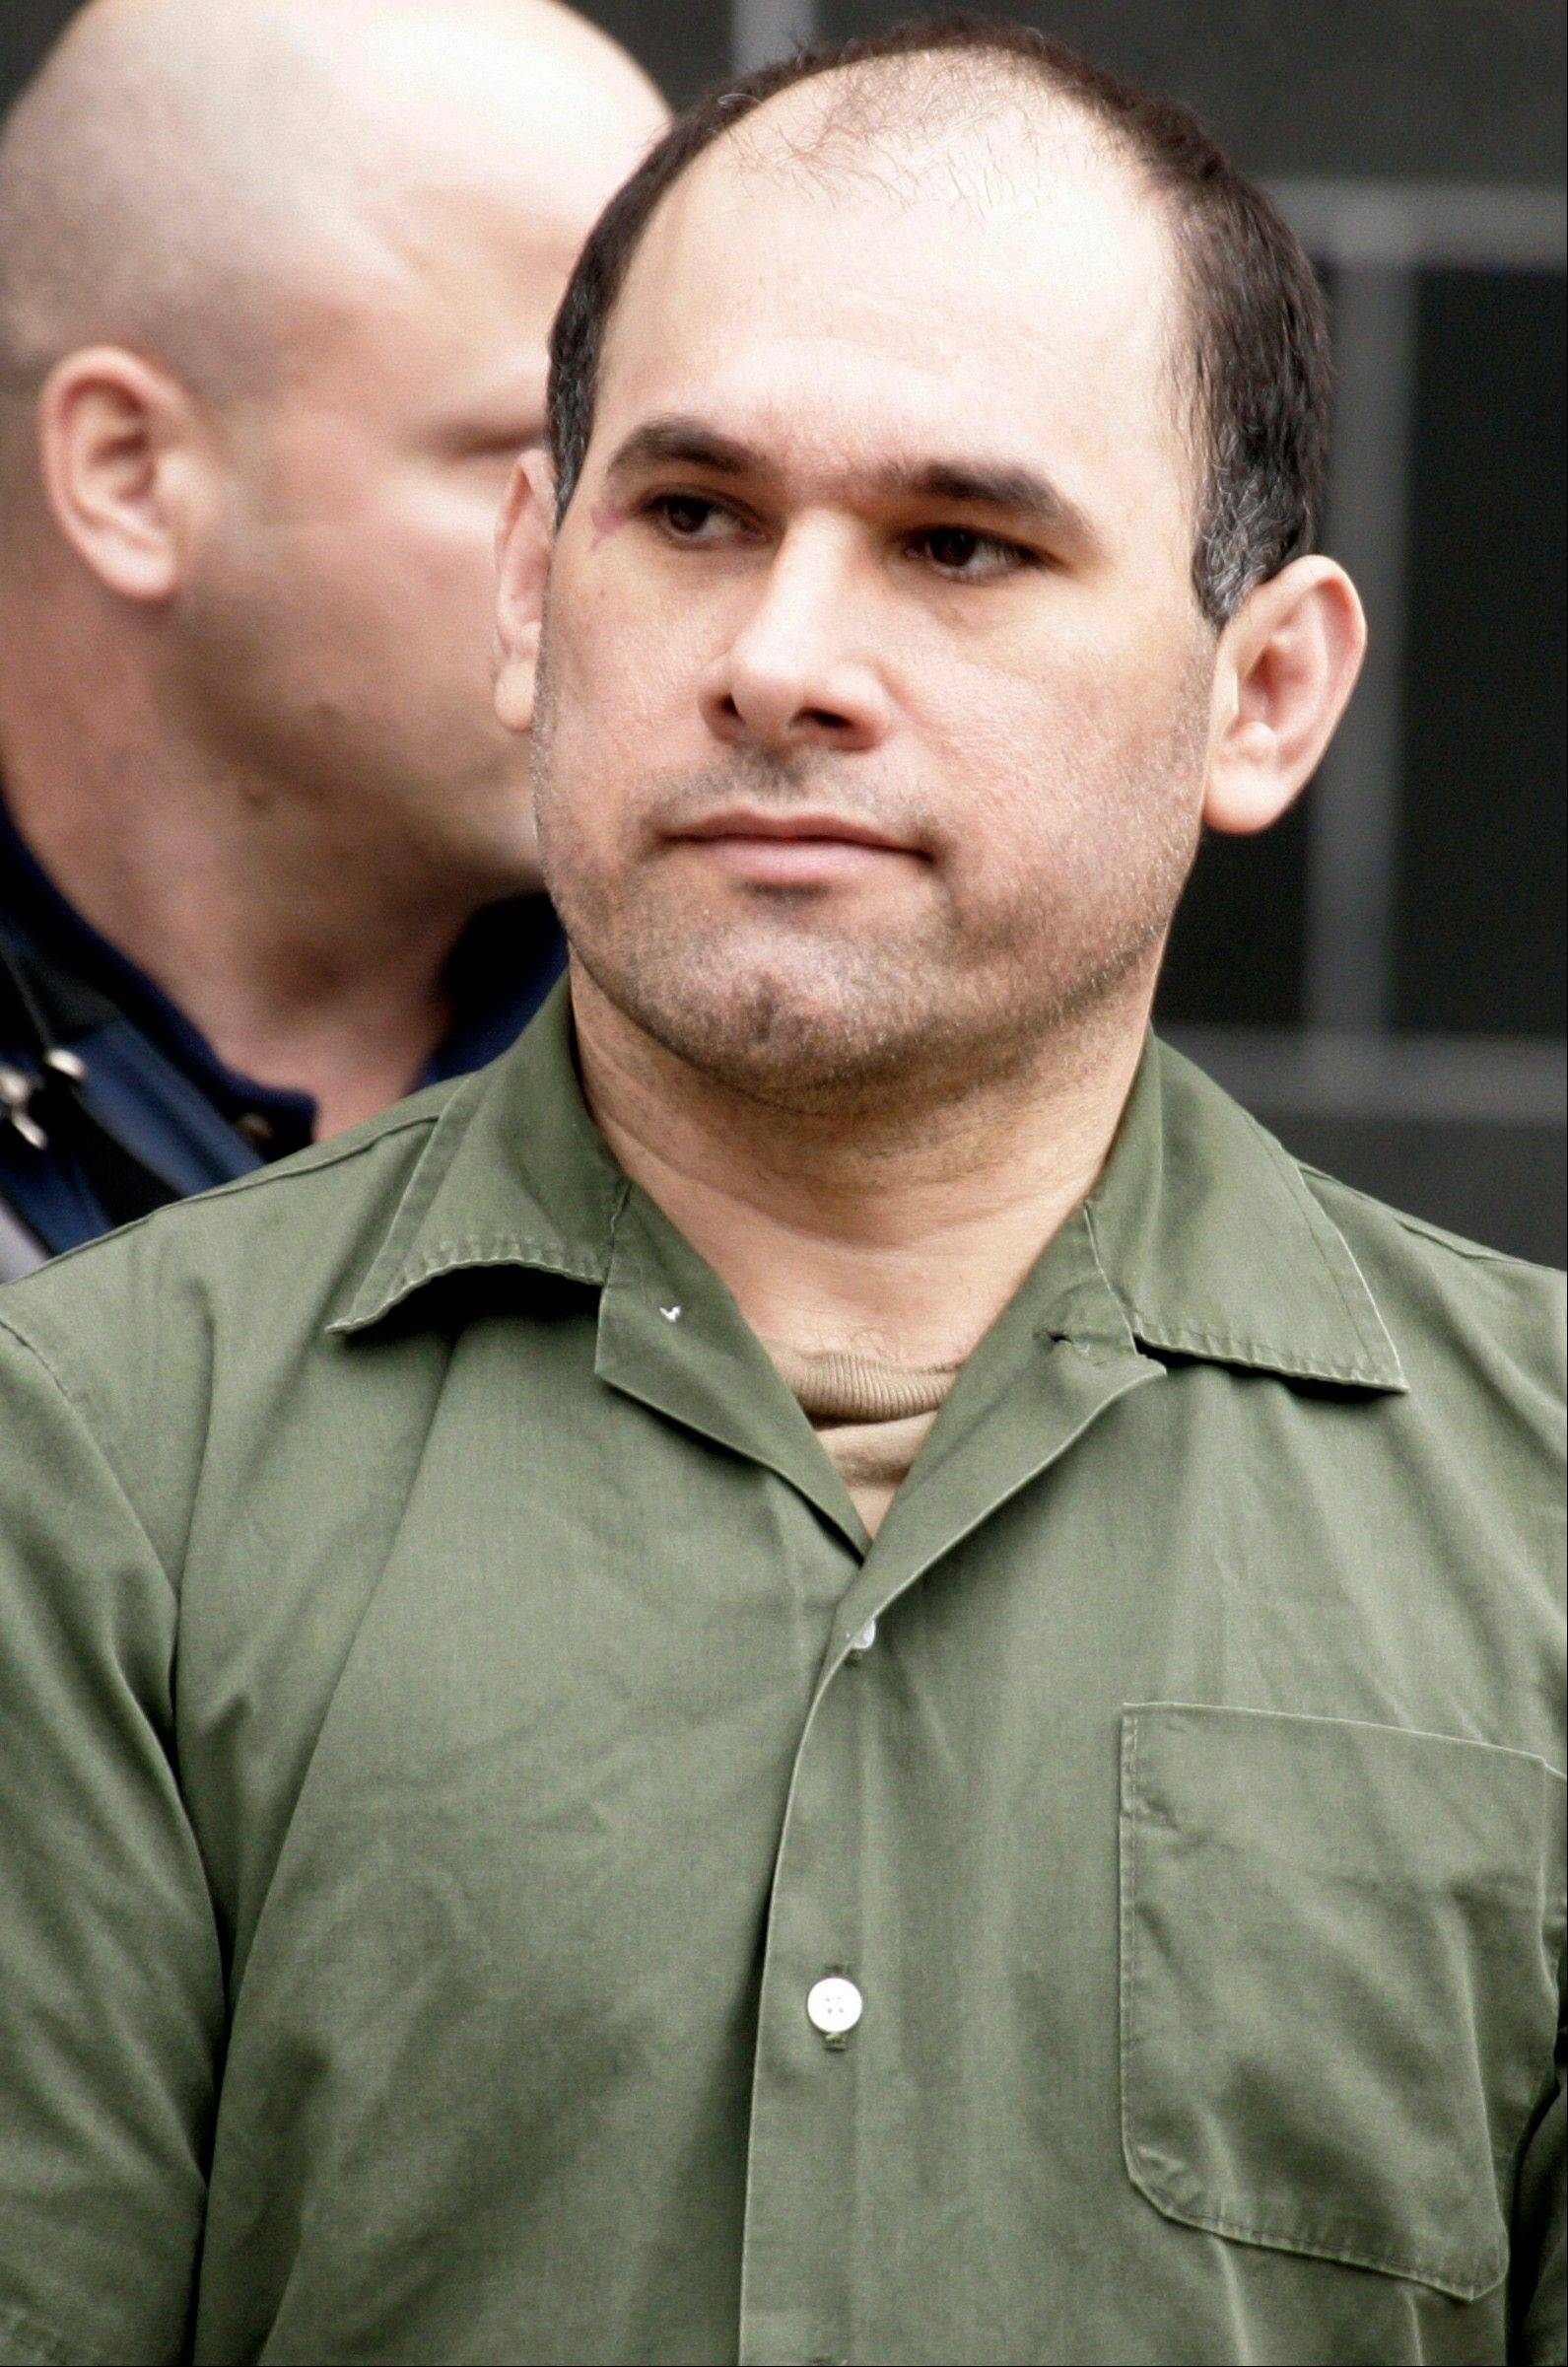 Accused Mexican drug kingpin Osiel Cardenas-Guillen, 39, leaves the federal courthouse in Houston after pleading not guilty to charges connected to running a cartel that at its height smuggled four to six tons of cocaine per month into the country.